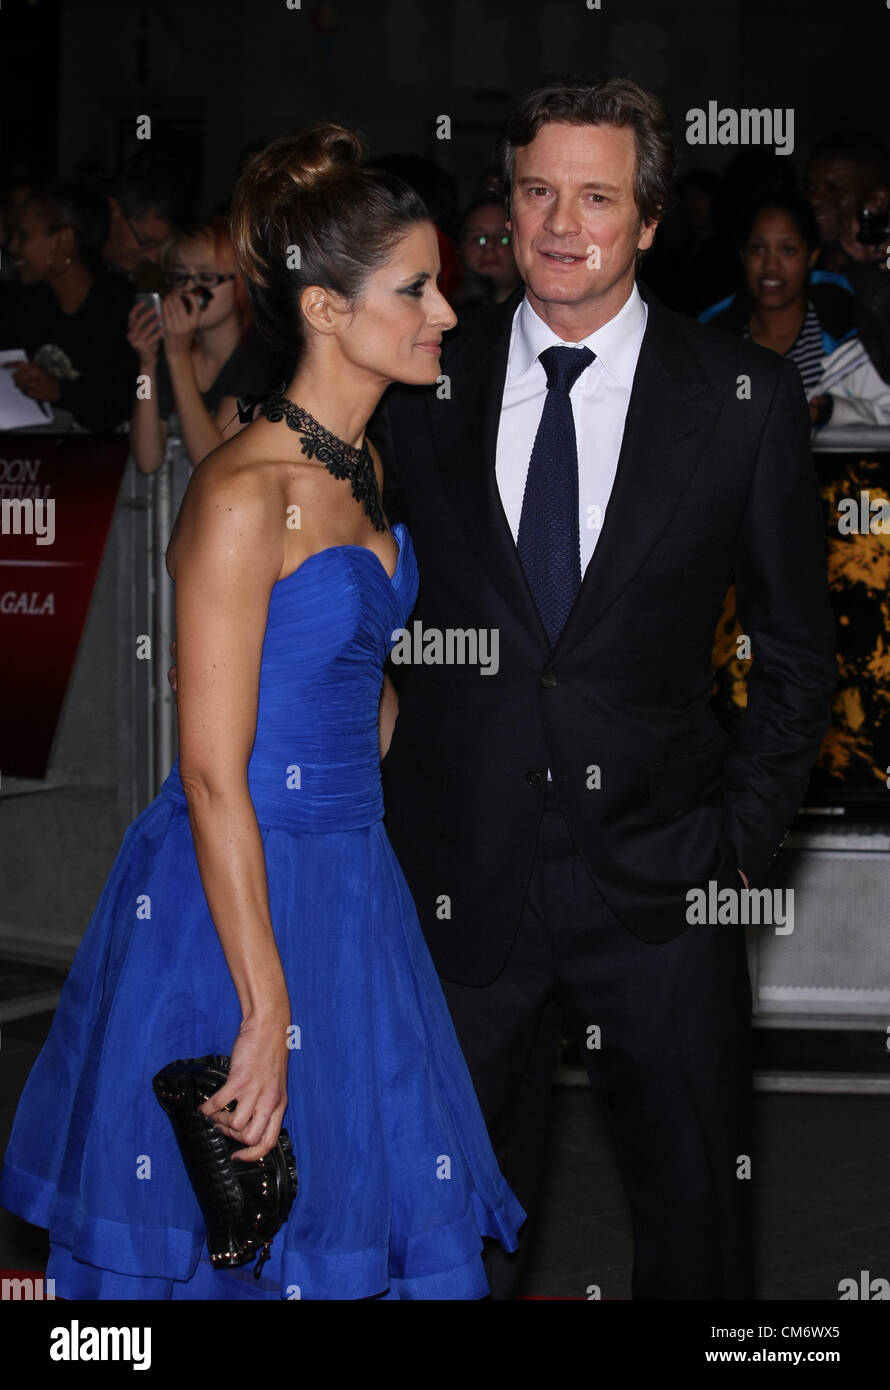 LIVIA GIUGGIOLI COLIN FIRTH CROSSFIRE HURRICANE. FÜHRENDE 56. BFI LONDON FILM FESTIVAL LONDON ENGLAND UK 18. Stockbild